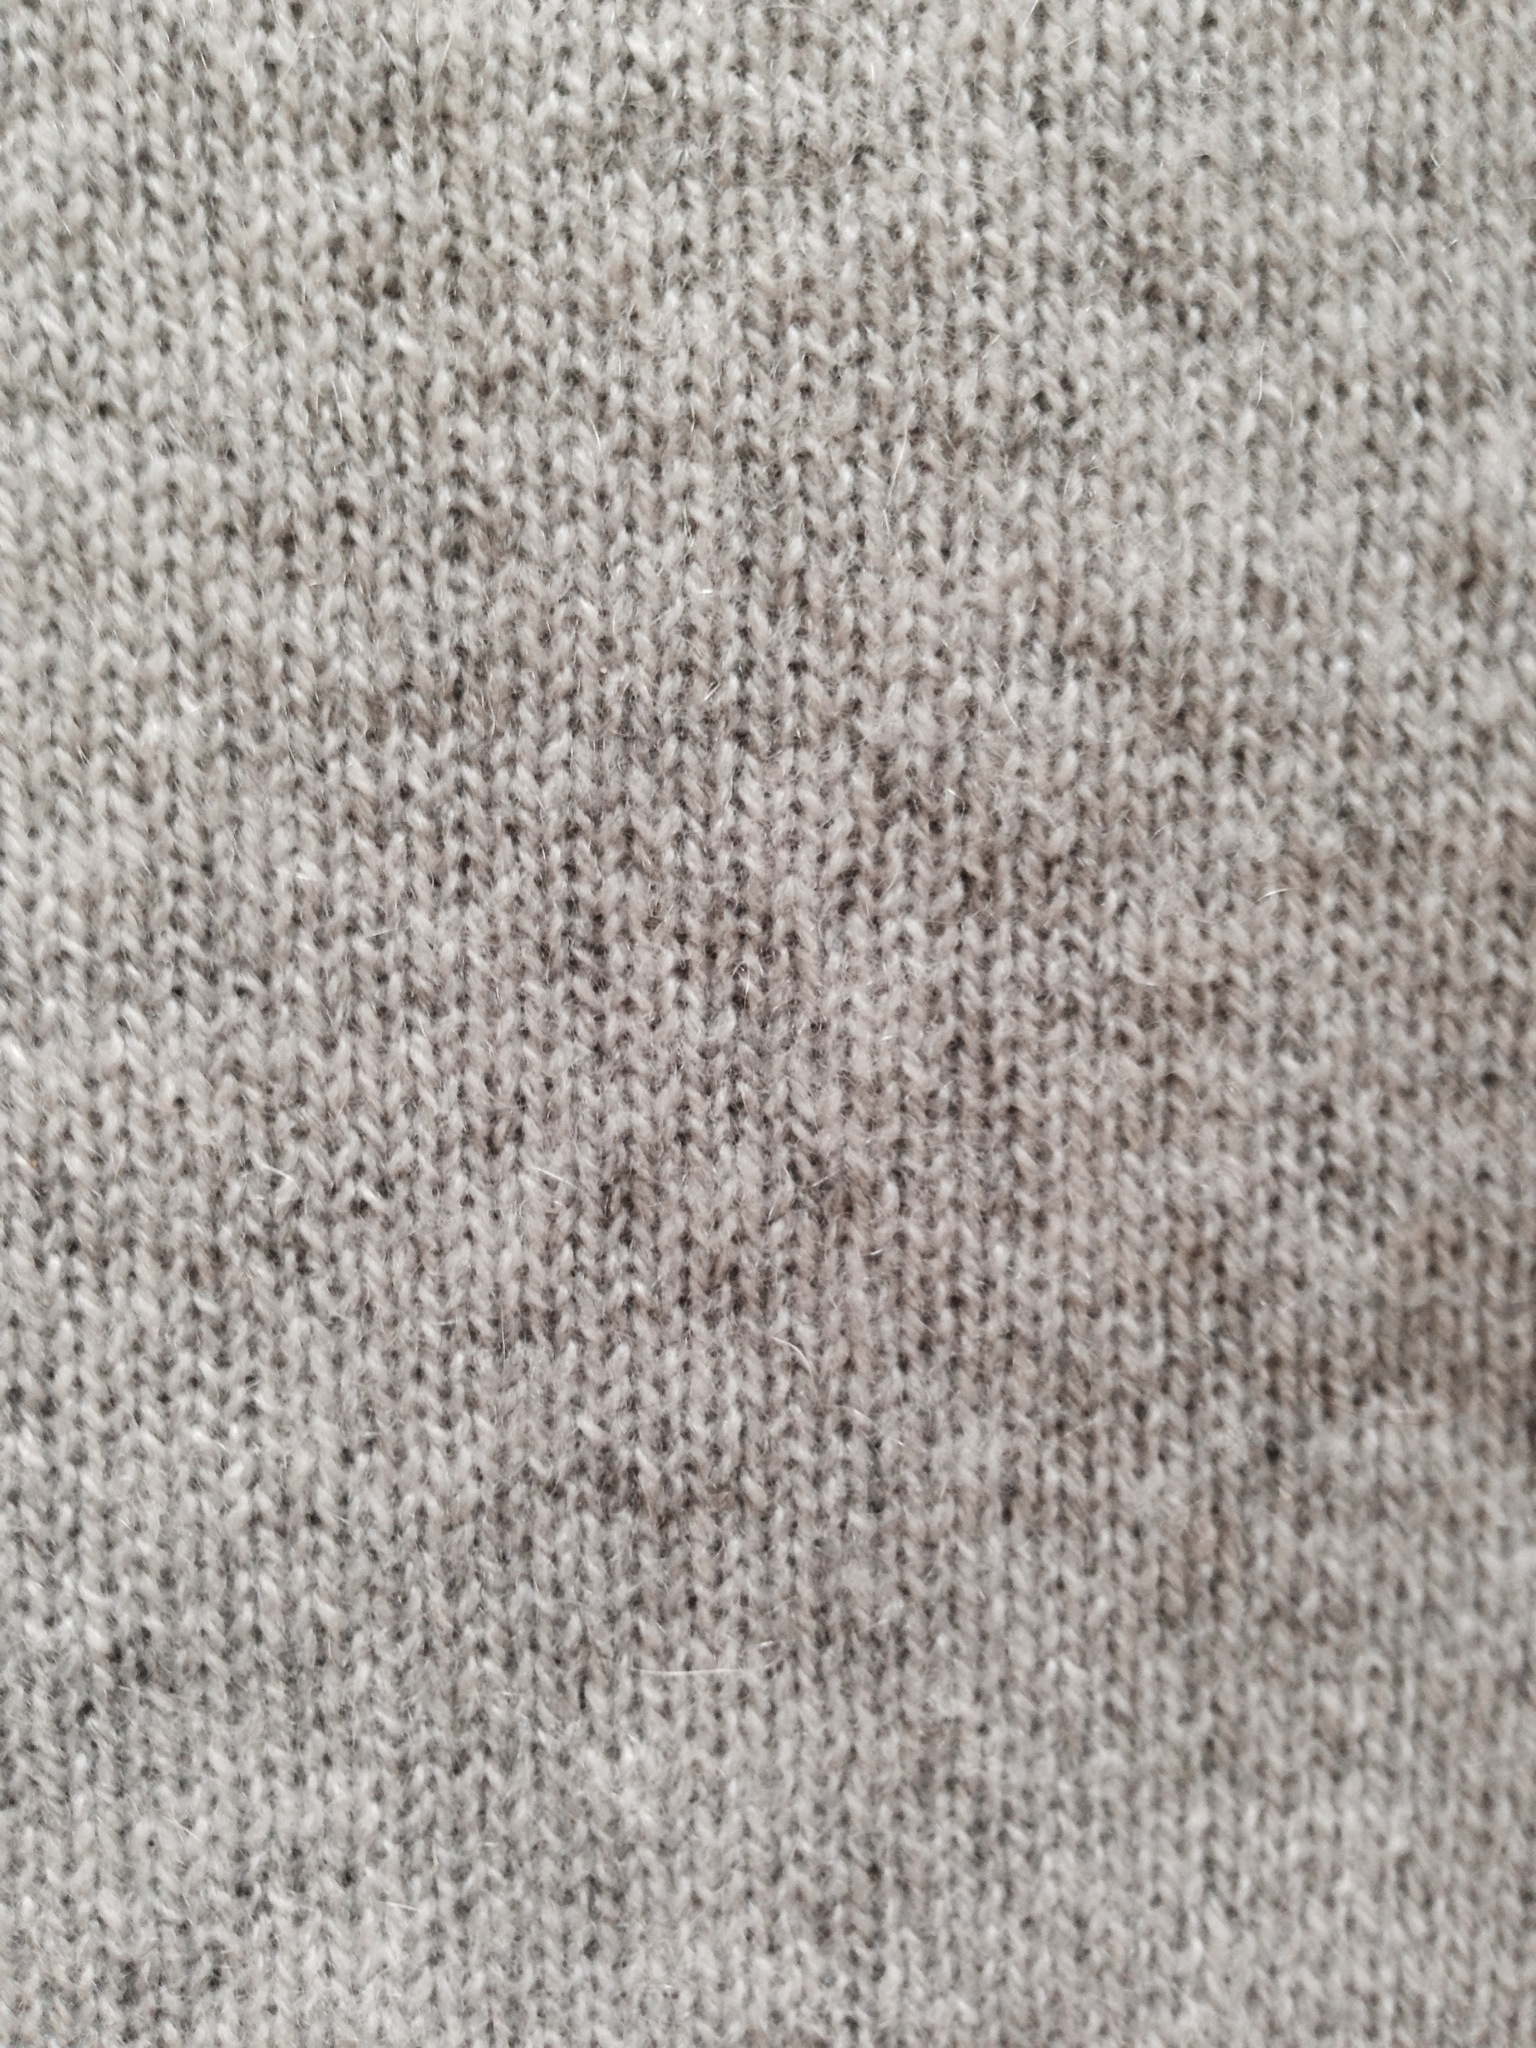 Quick Fix For Pilling Sweaters